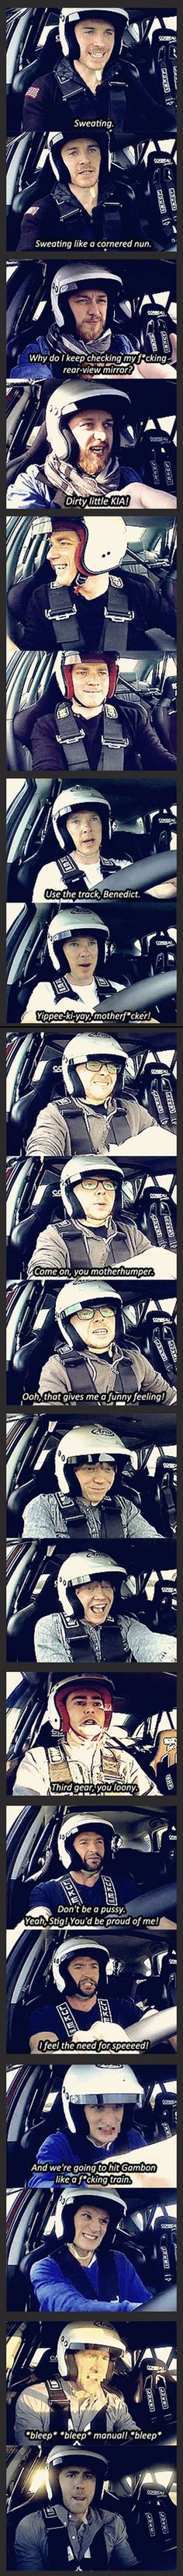 Top Gear brings out the best in celebrities :) ------------------- I love this more than I can say.